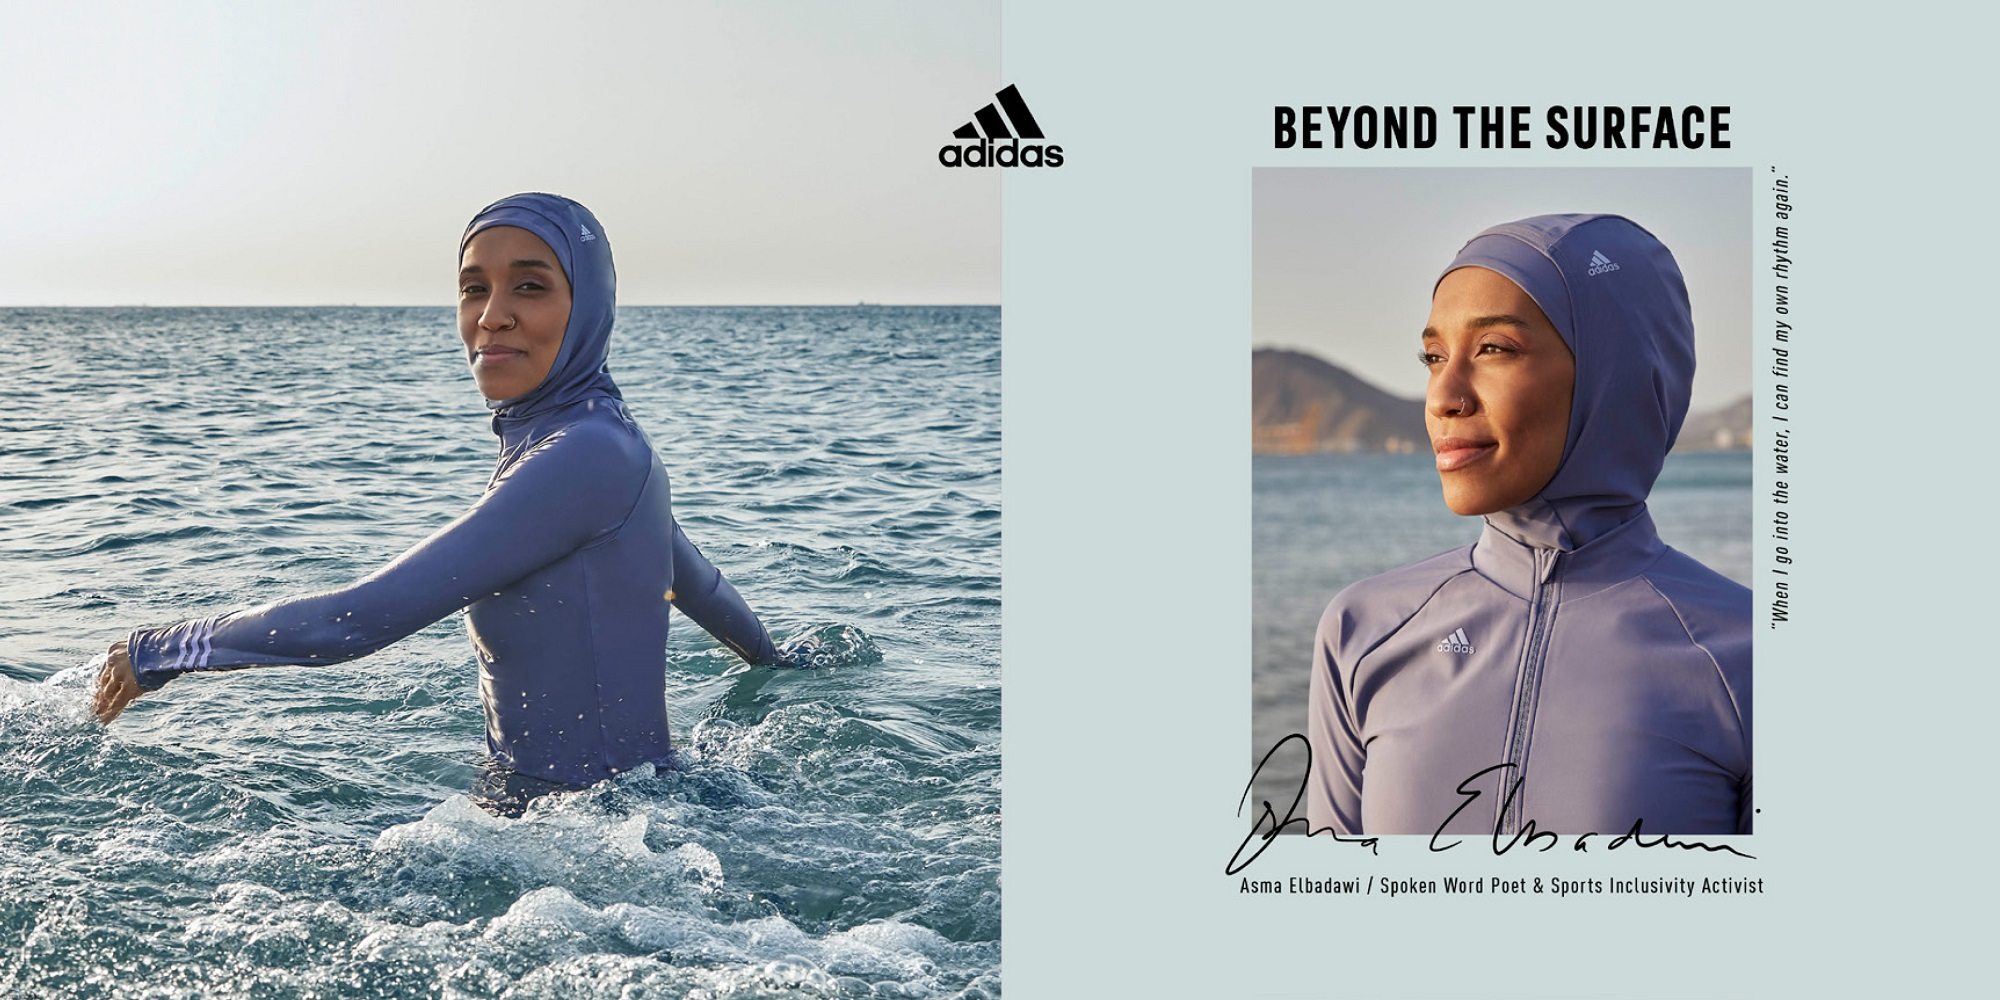 adidas-reinforces-inclusivity-in-swimming-with-launch-of-its-first-full-cover-swimwear-collection